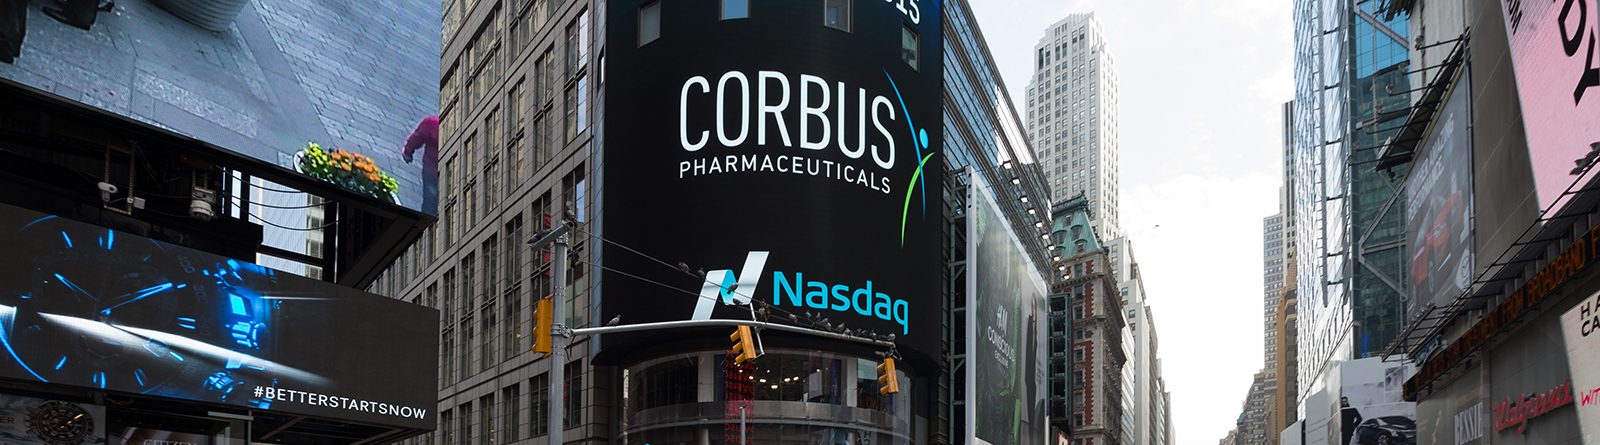 Corbus Pharmaceuticals Appoints Rachelle Jacques to Board of Directors Banner